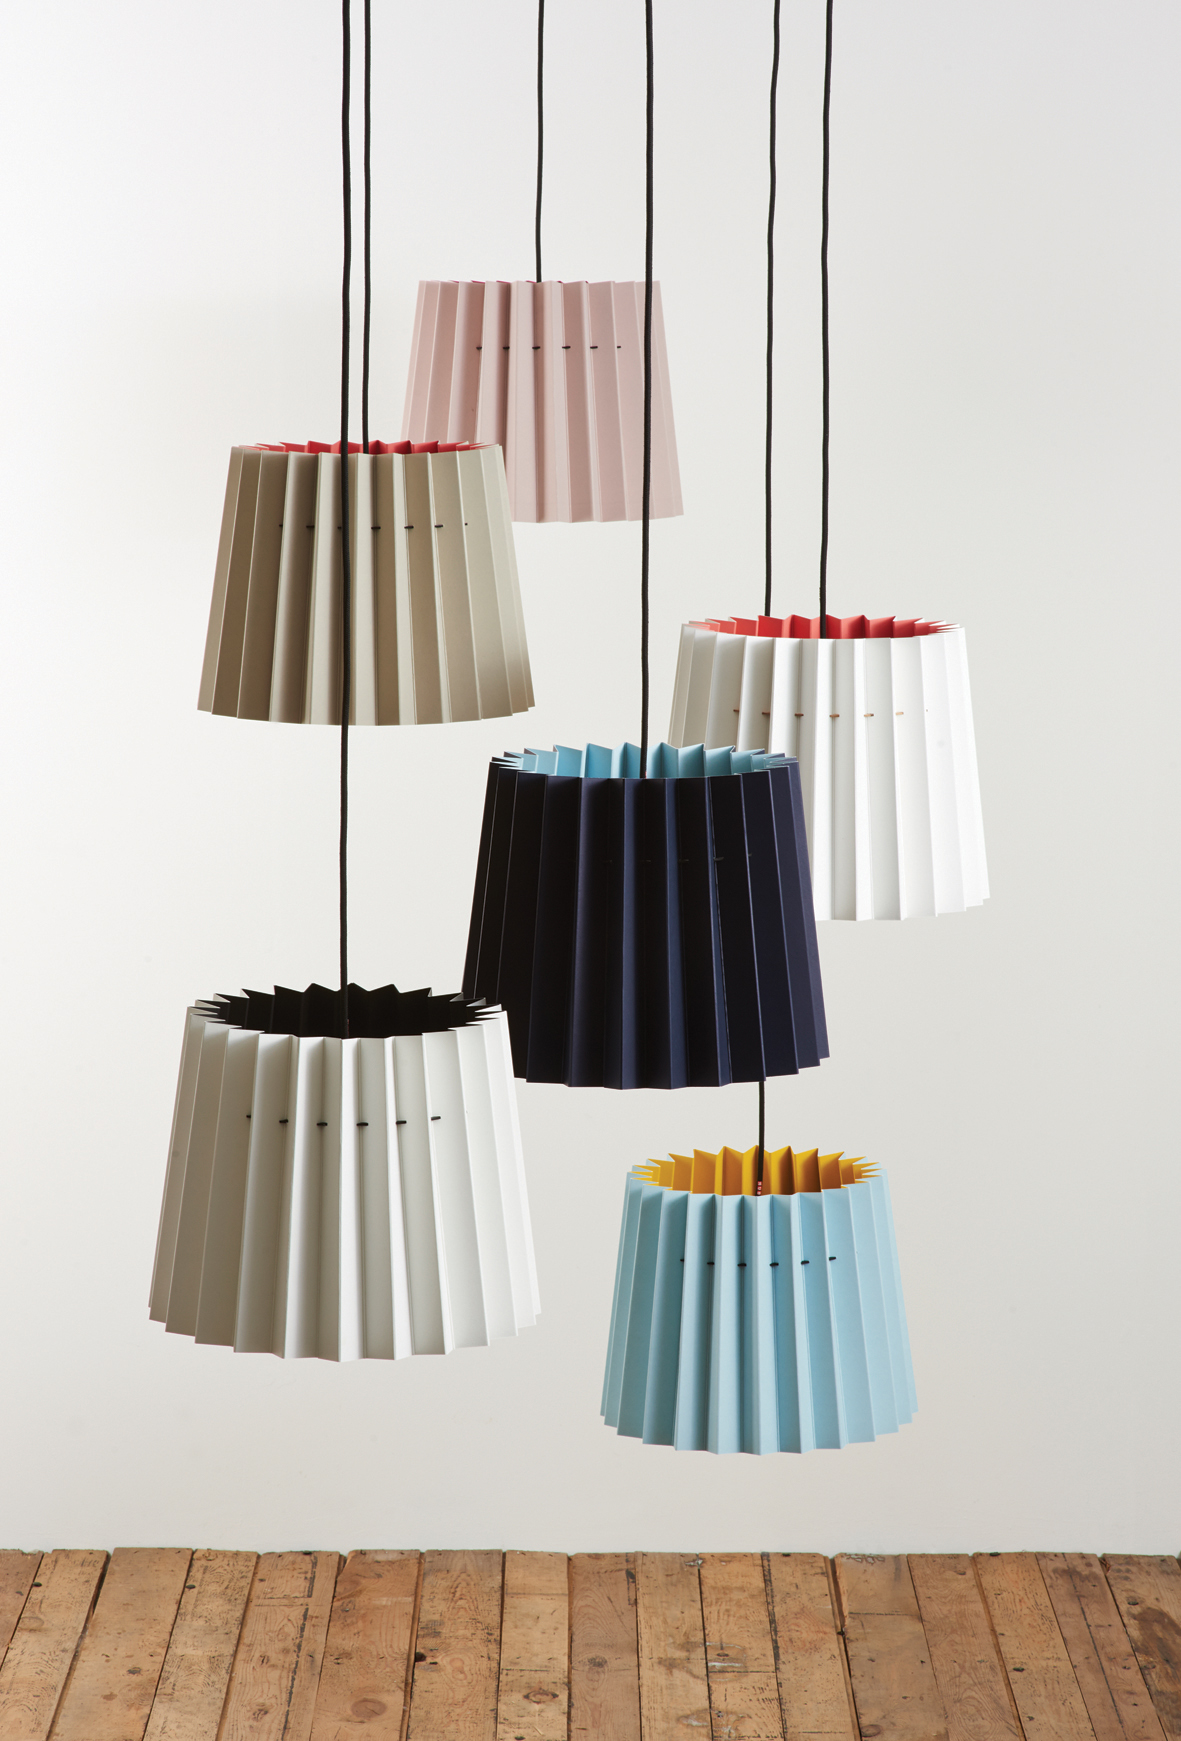 Lane & Little Greene Twin Tone Lampshades